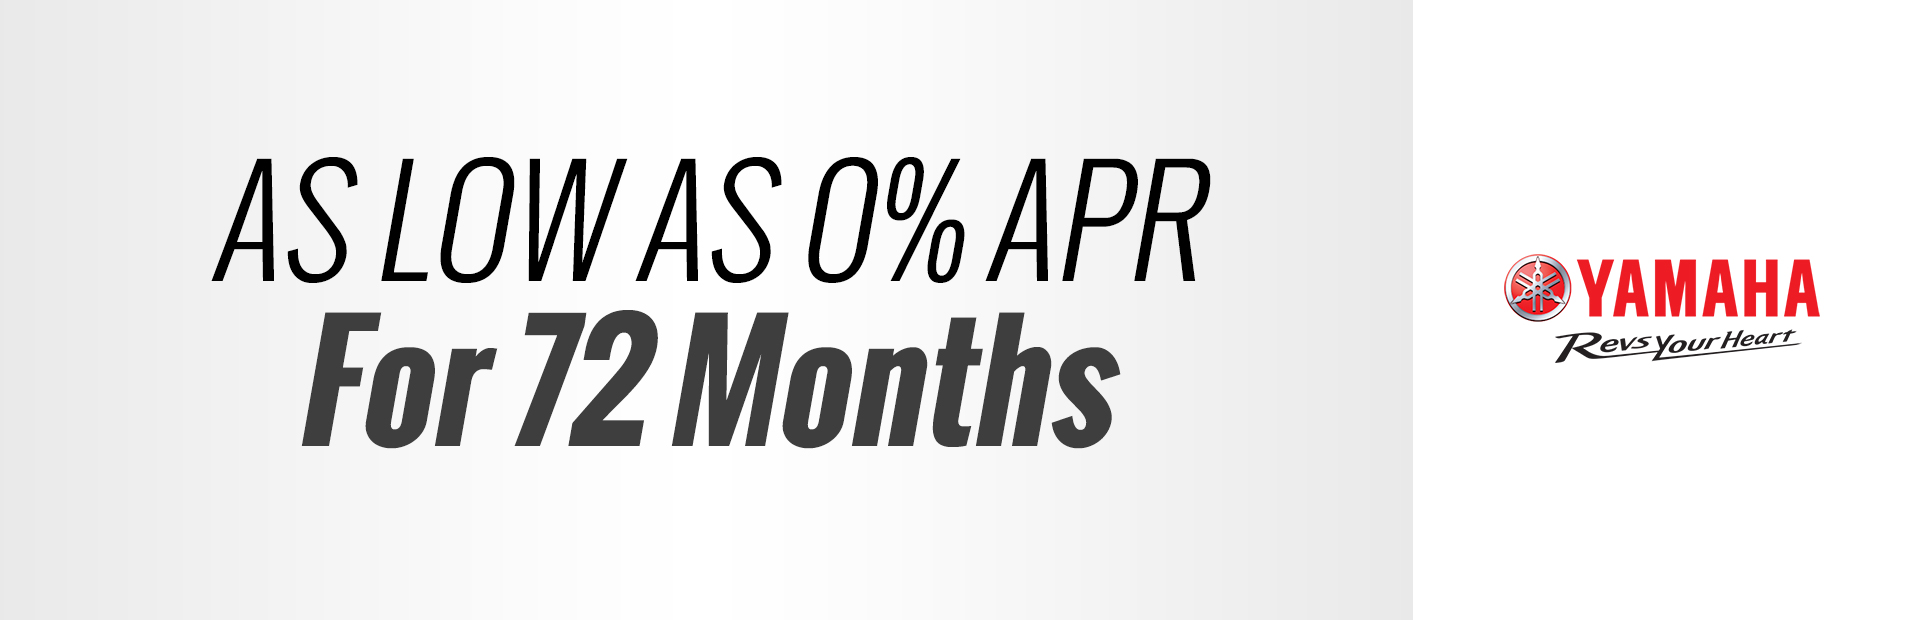 As Low As 0% APR for 72 months